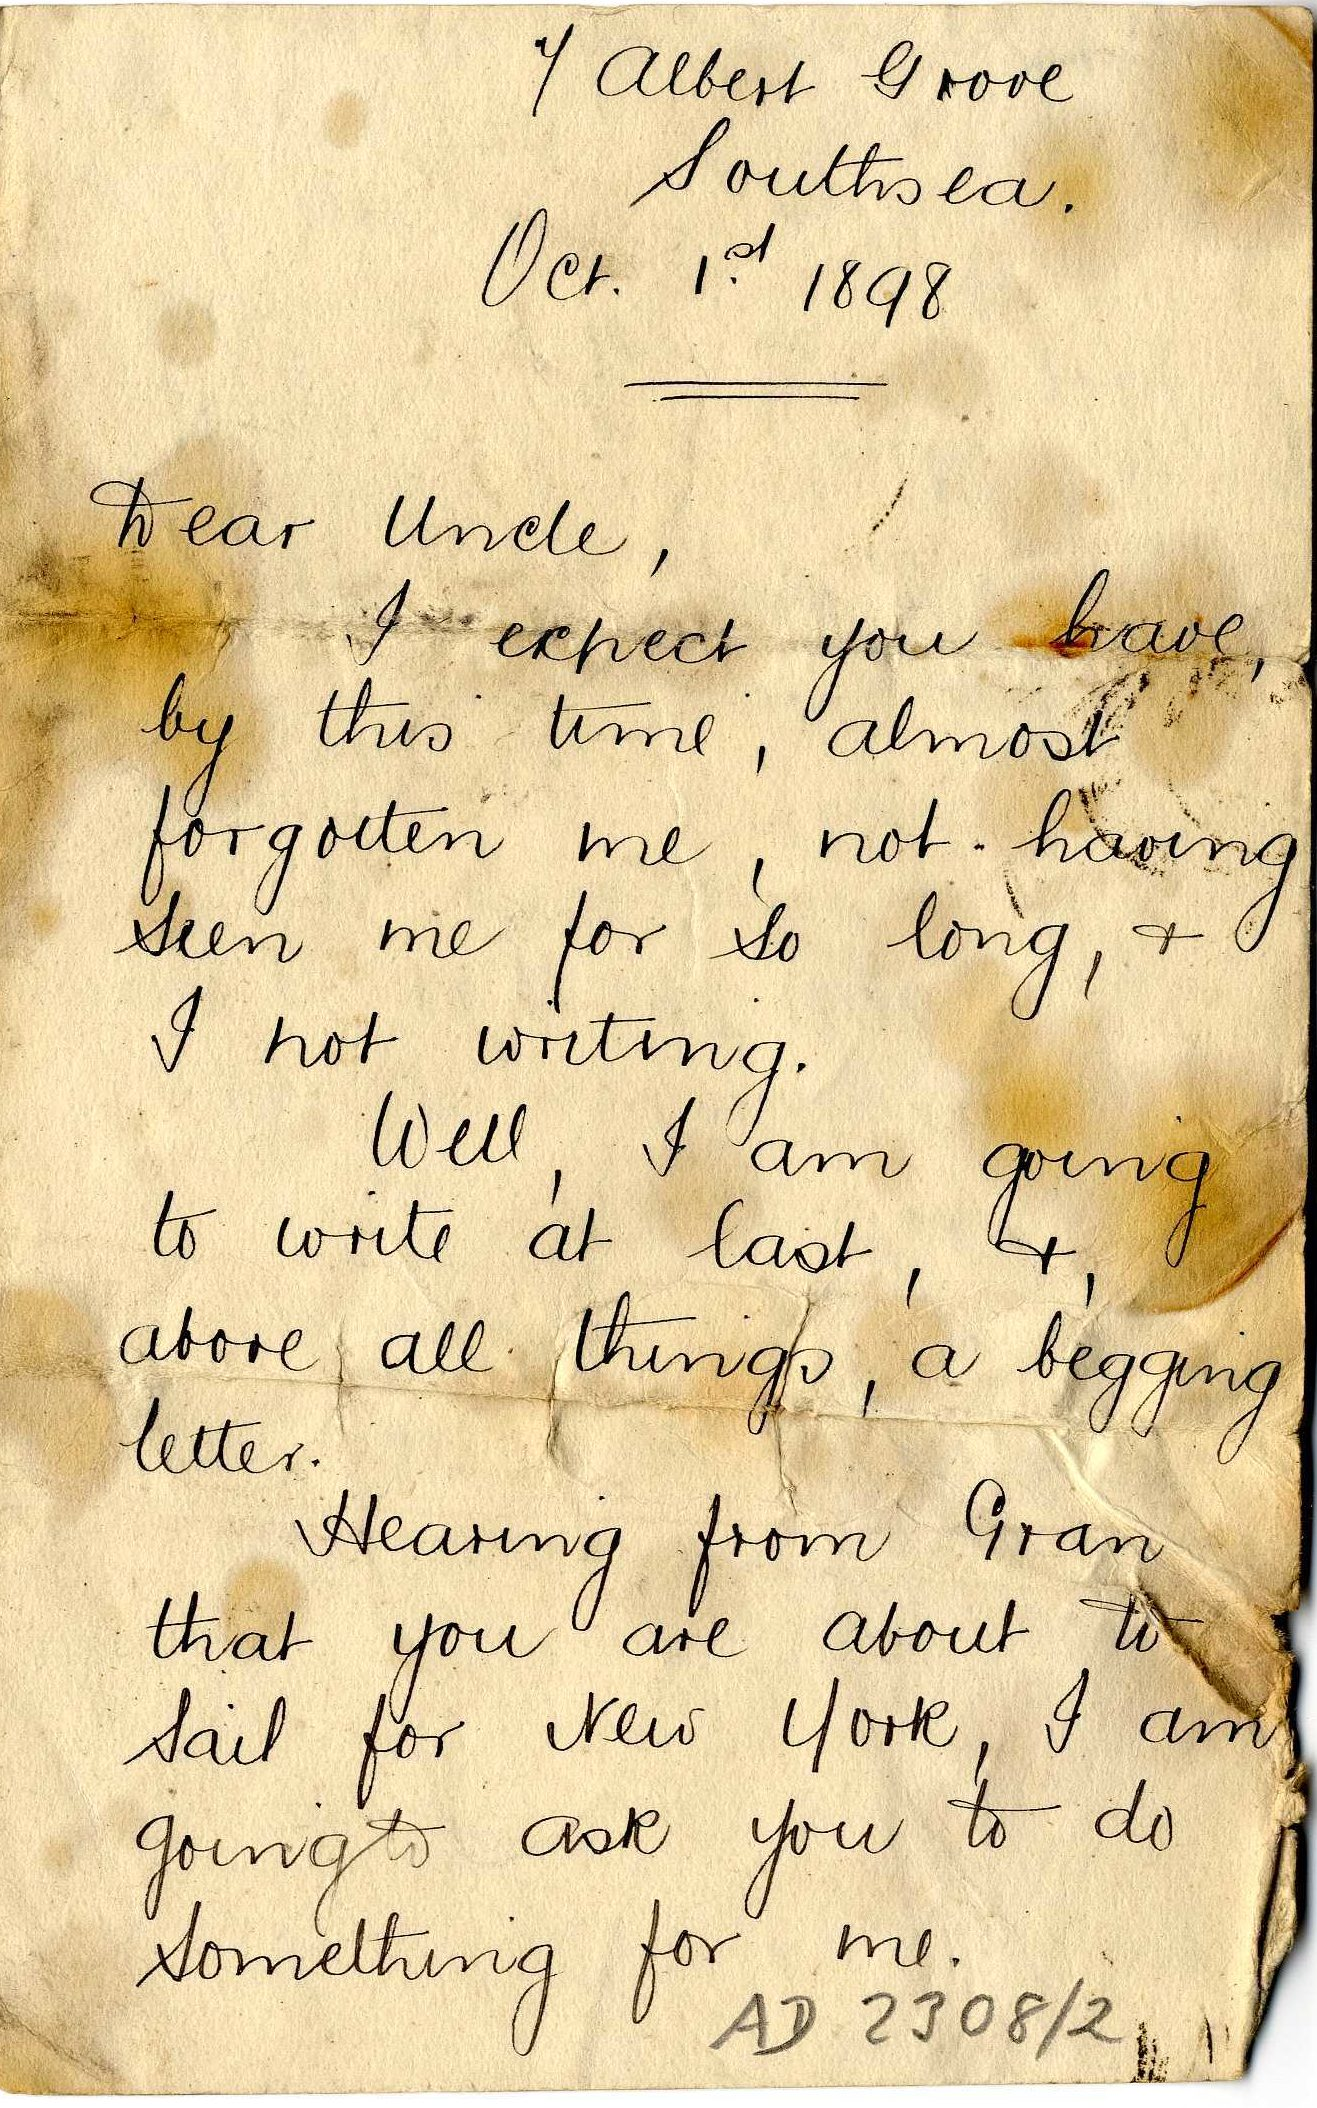 Scan of handwritten letter with water stains.